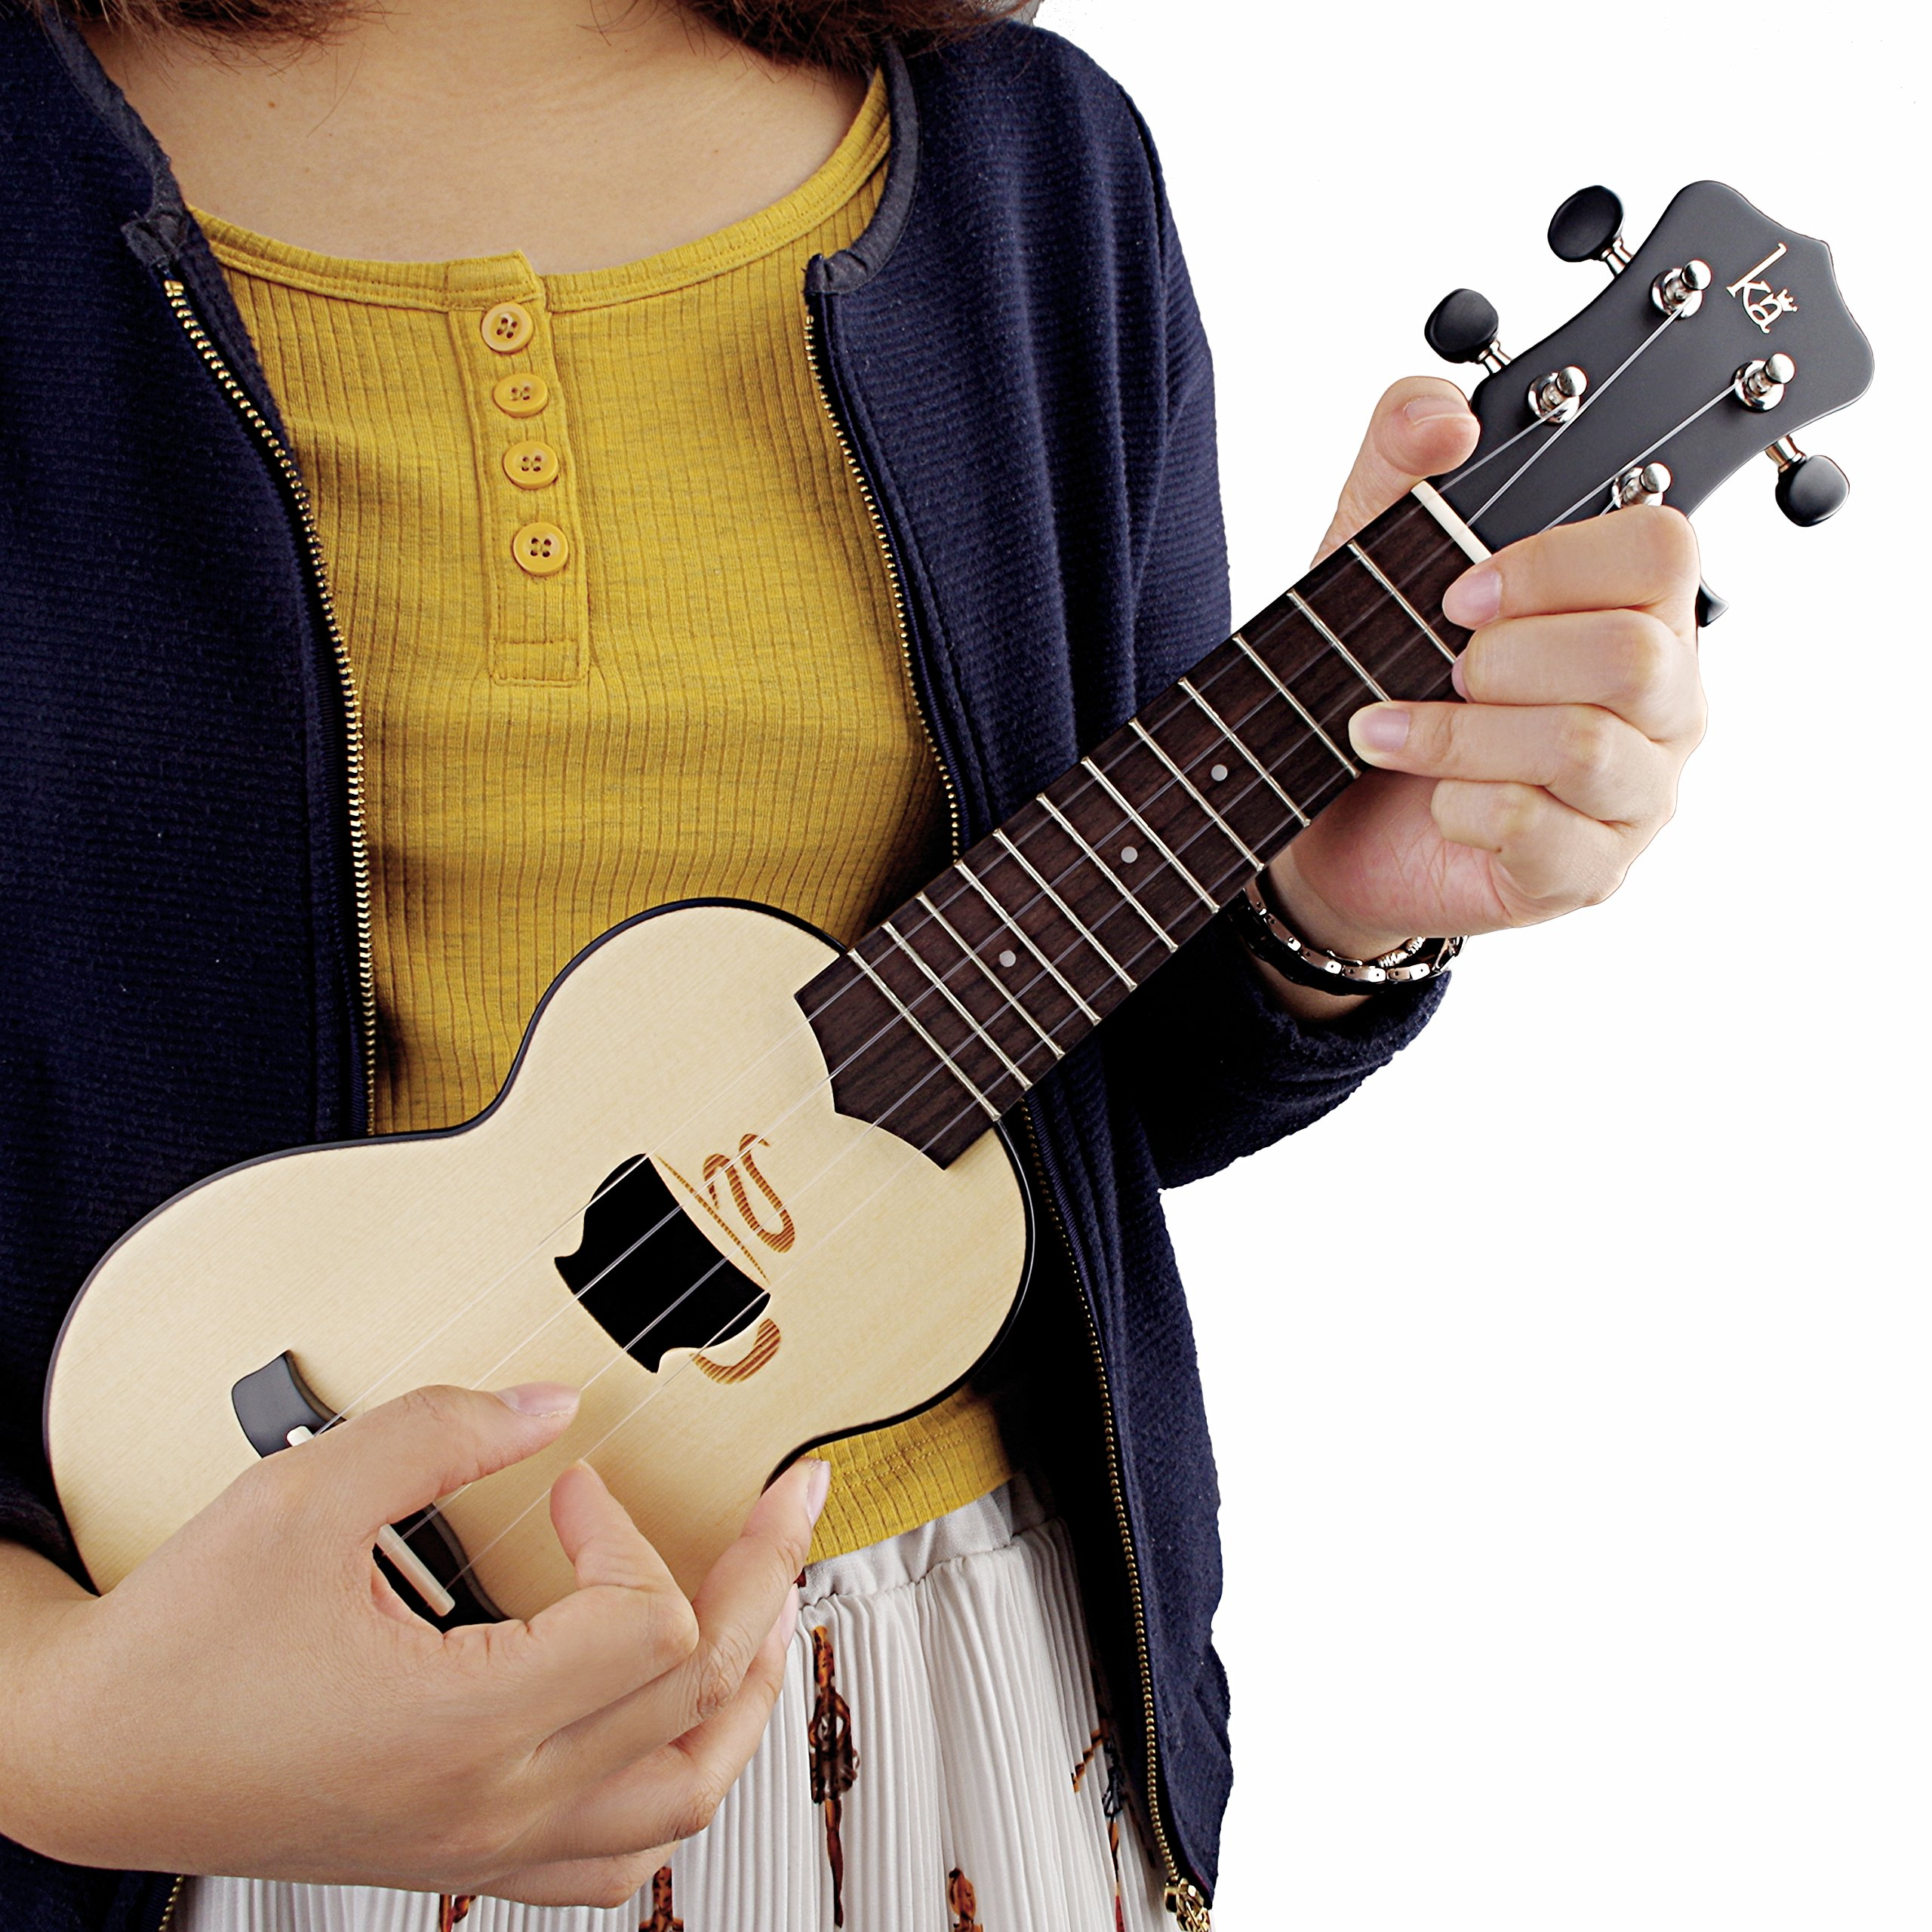 Small Kids Guitar Ukulele Nylon String 17\'\' with Zipped Carry Case (Coffee Cup Version)